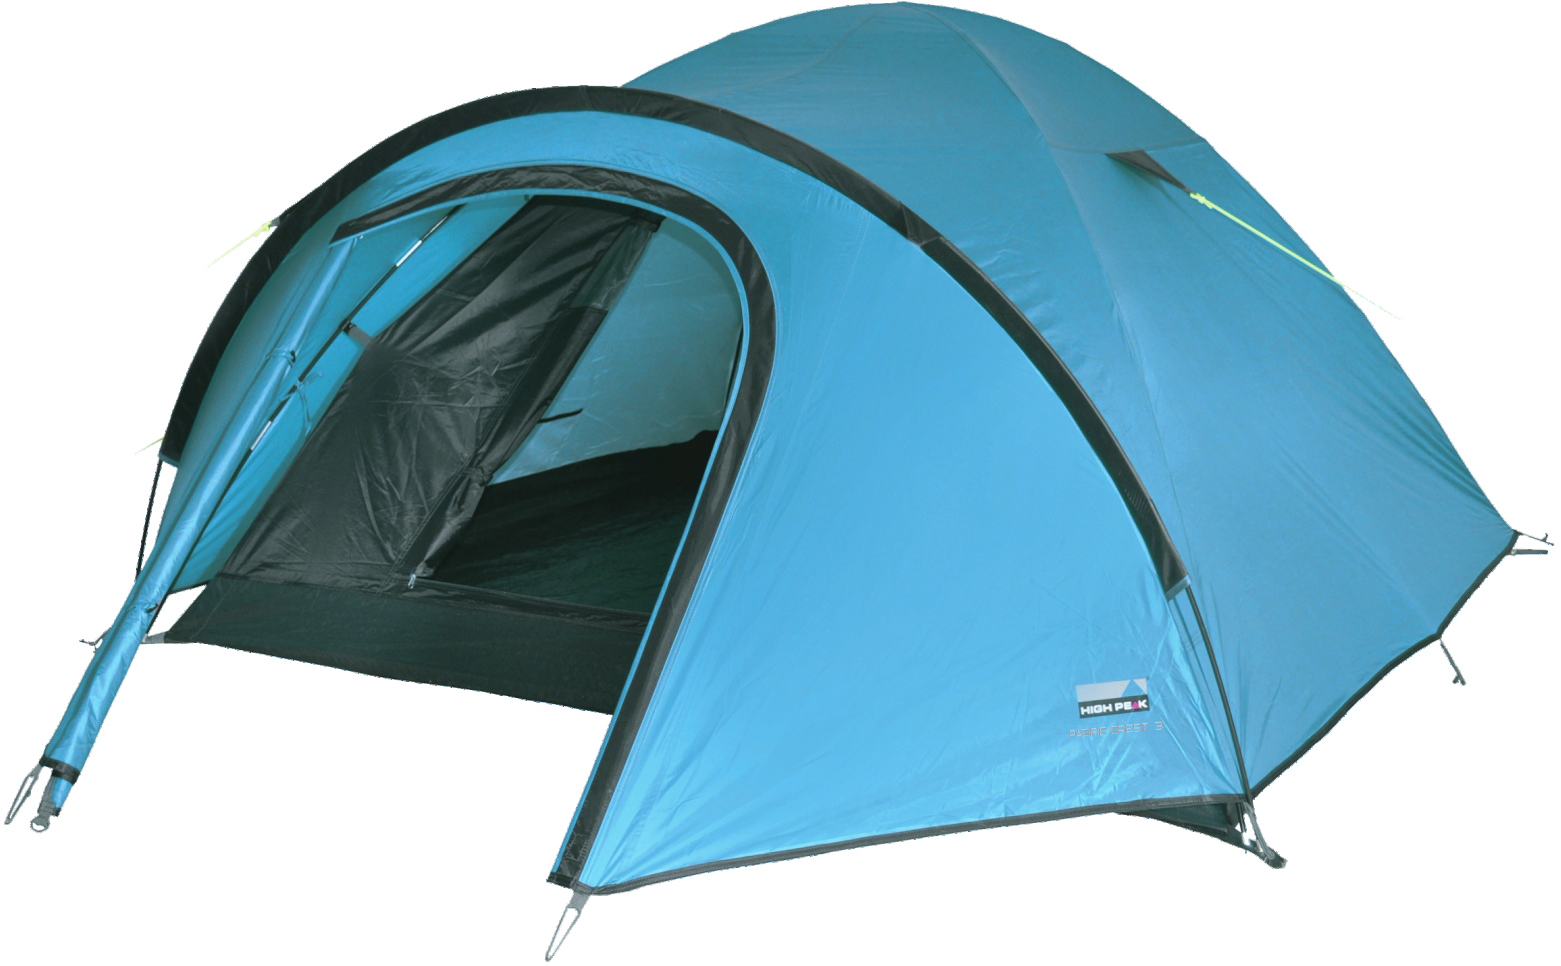 Pacific Crest 3 Person Tent High Peak Outdoors